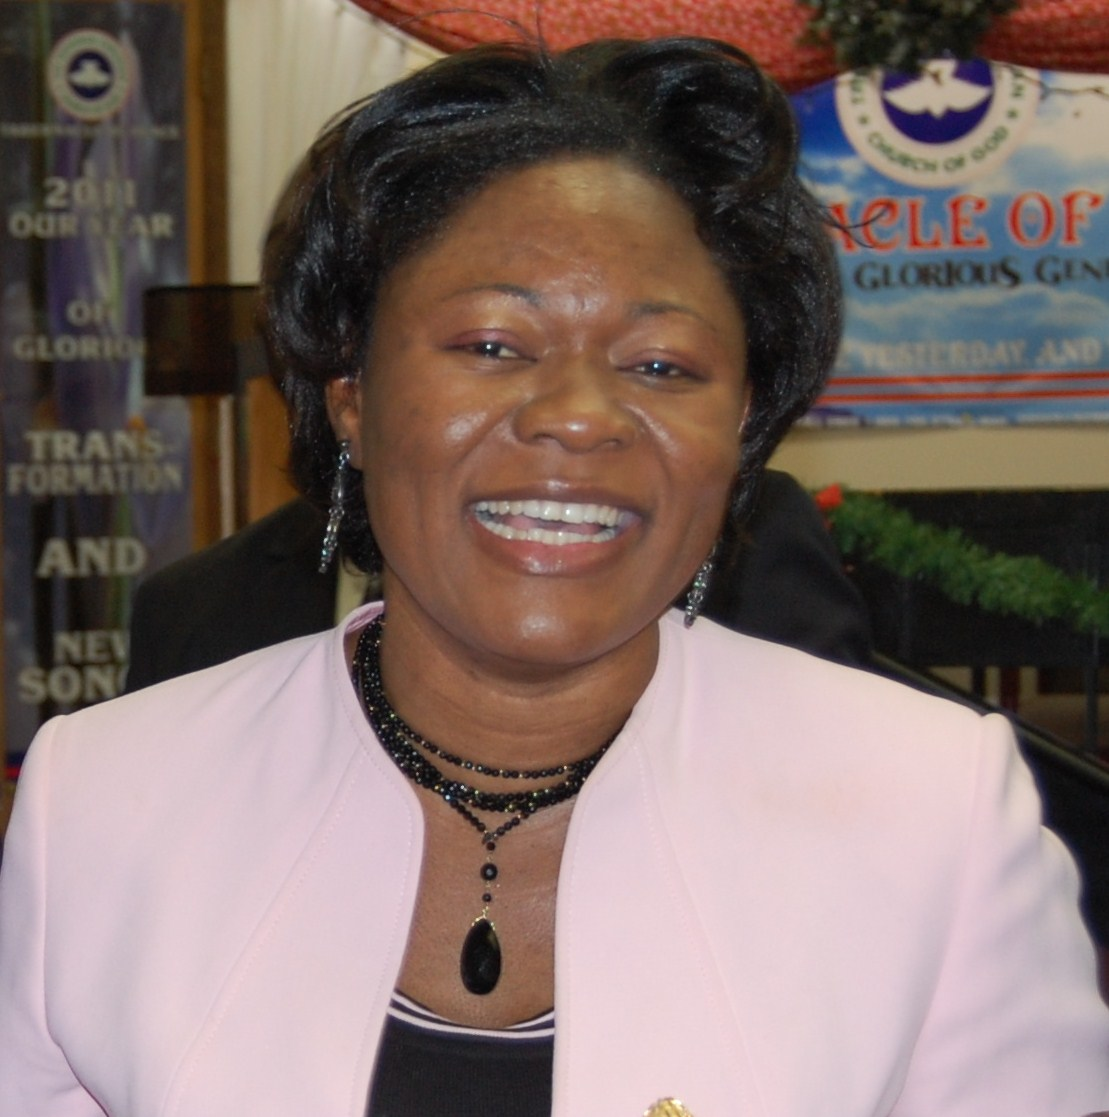 MINISTER ESTHER OLAOYE